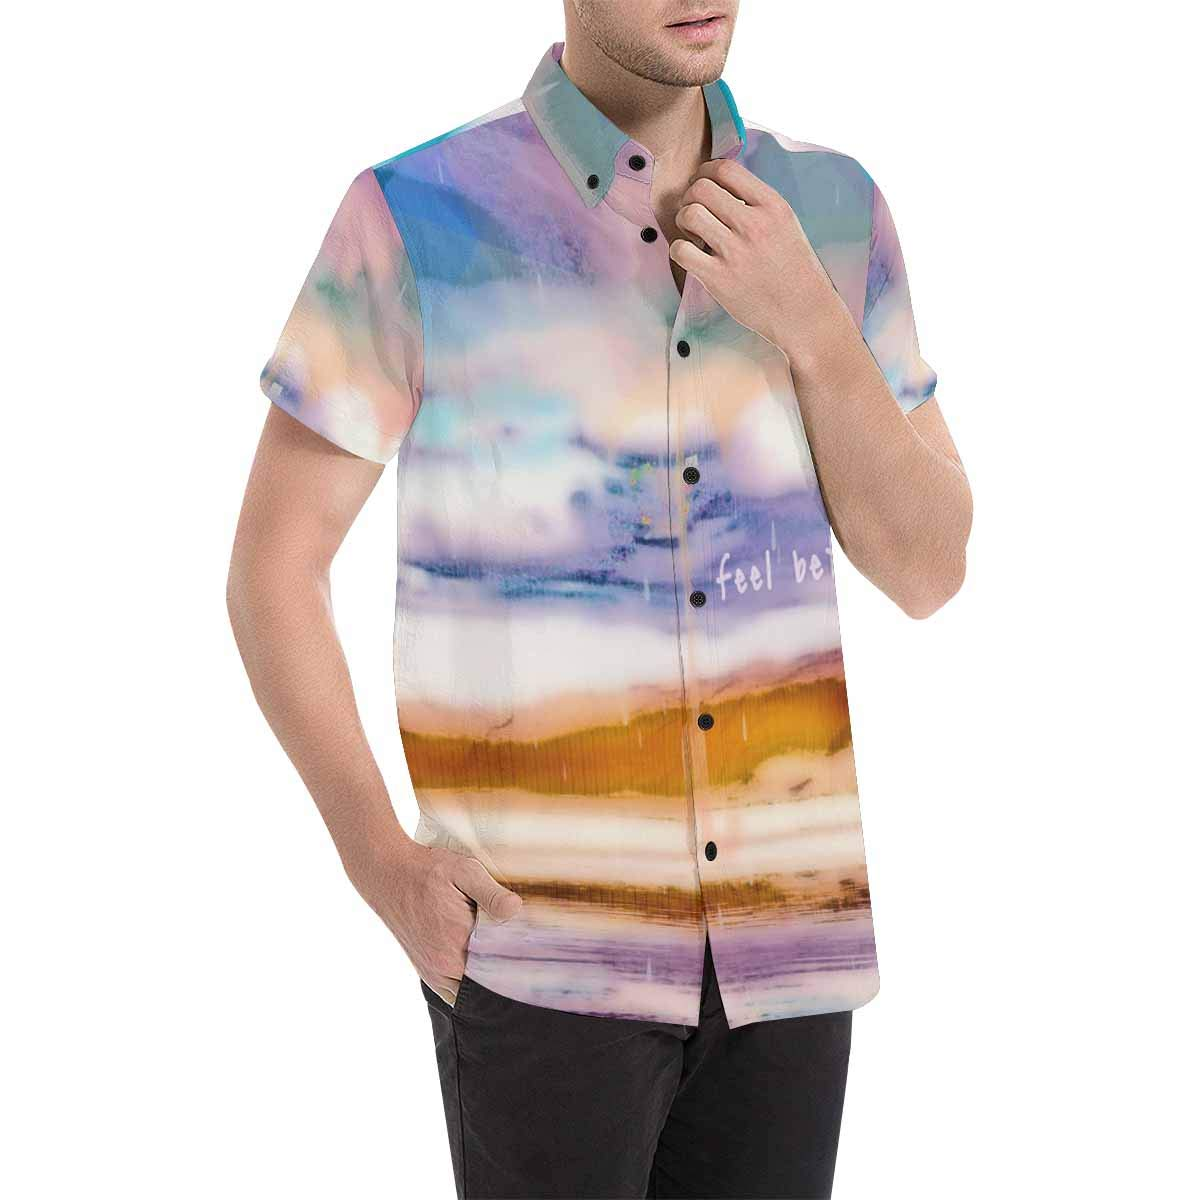 InterestPrint Charming and Sweet Umbrella Shirt Short Sleeve Button Down Casual Beach Party Tops for Men